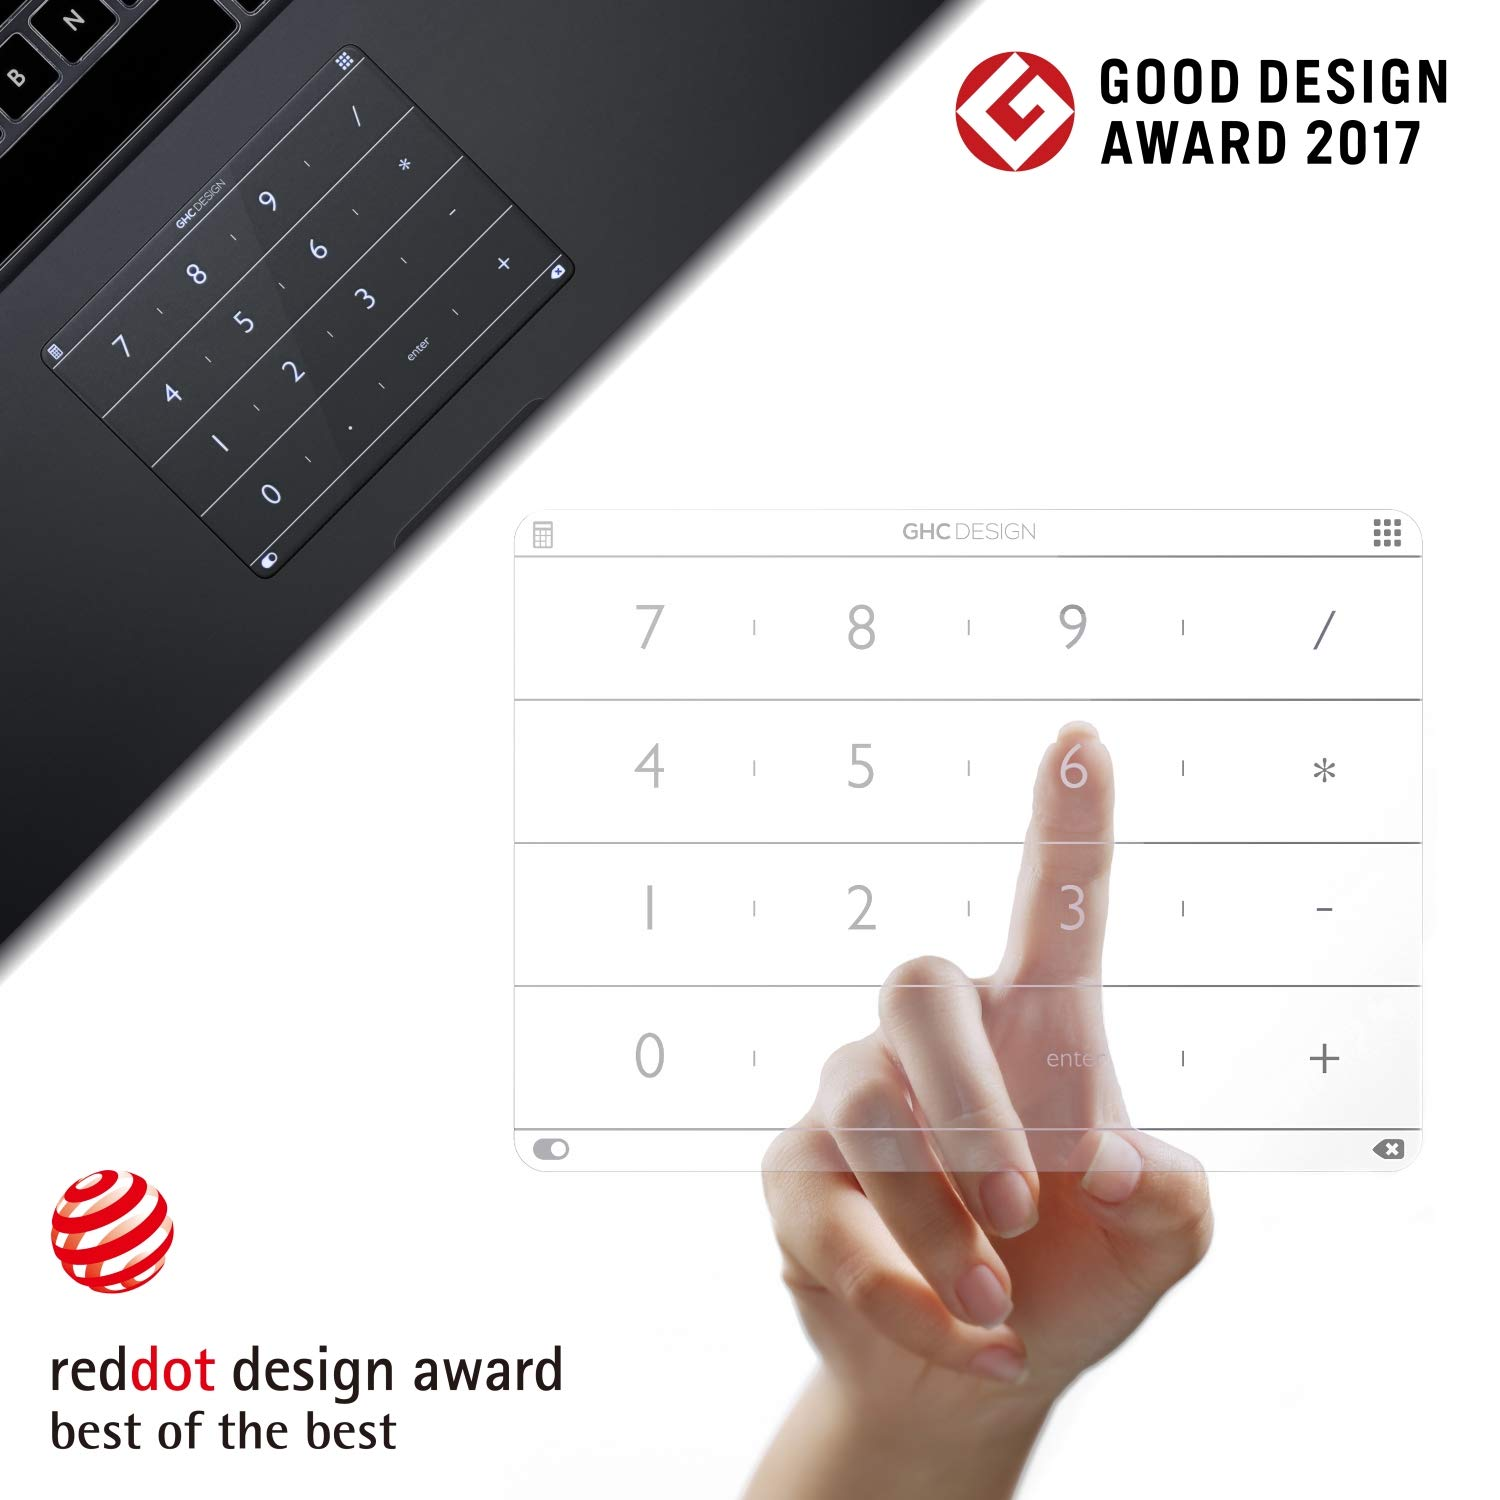 Nums Numeric Keypad for MacBook, Wireless Number Pad Calculator, App/Web/Folder Swift Launch Funtion, Trackpad Protector for New MacBook Pro 13'' 2016-2018 Version